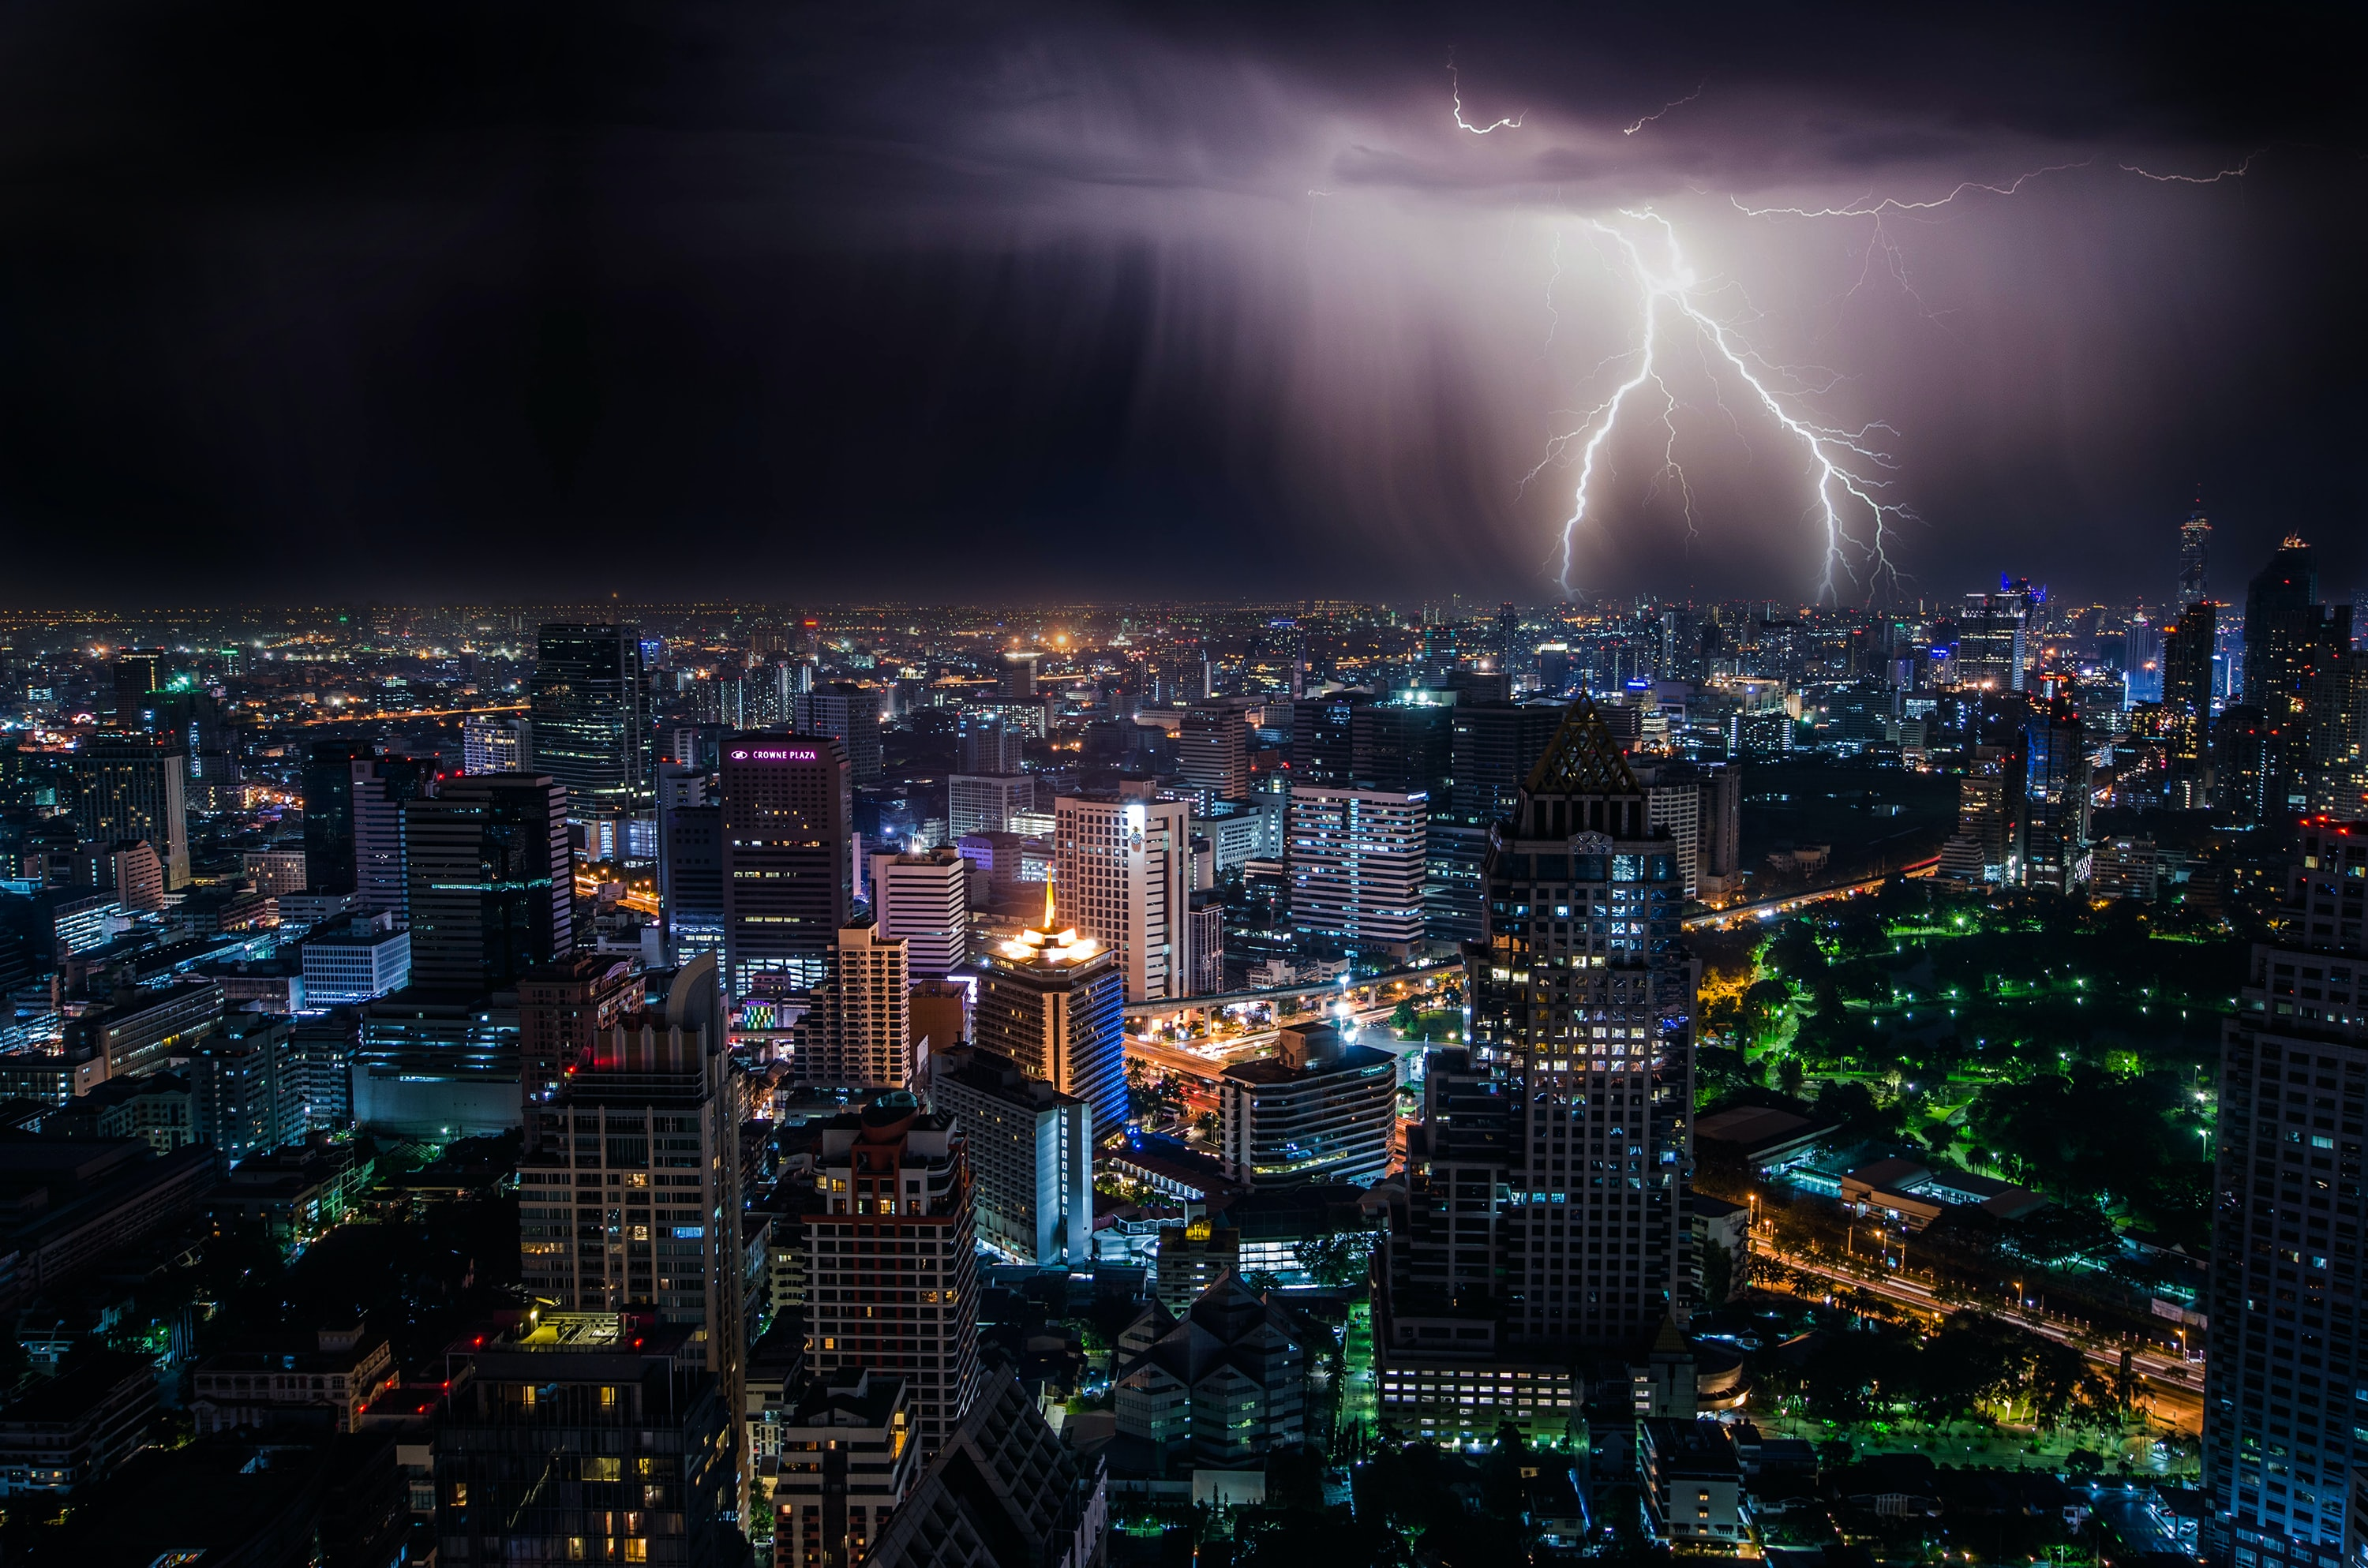 aerial view of city buildings with lightning strike